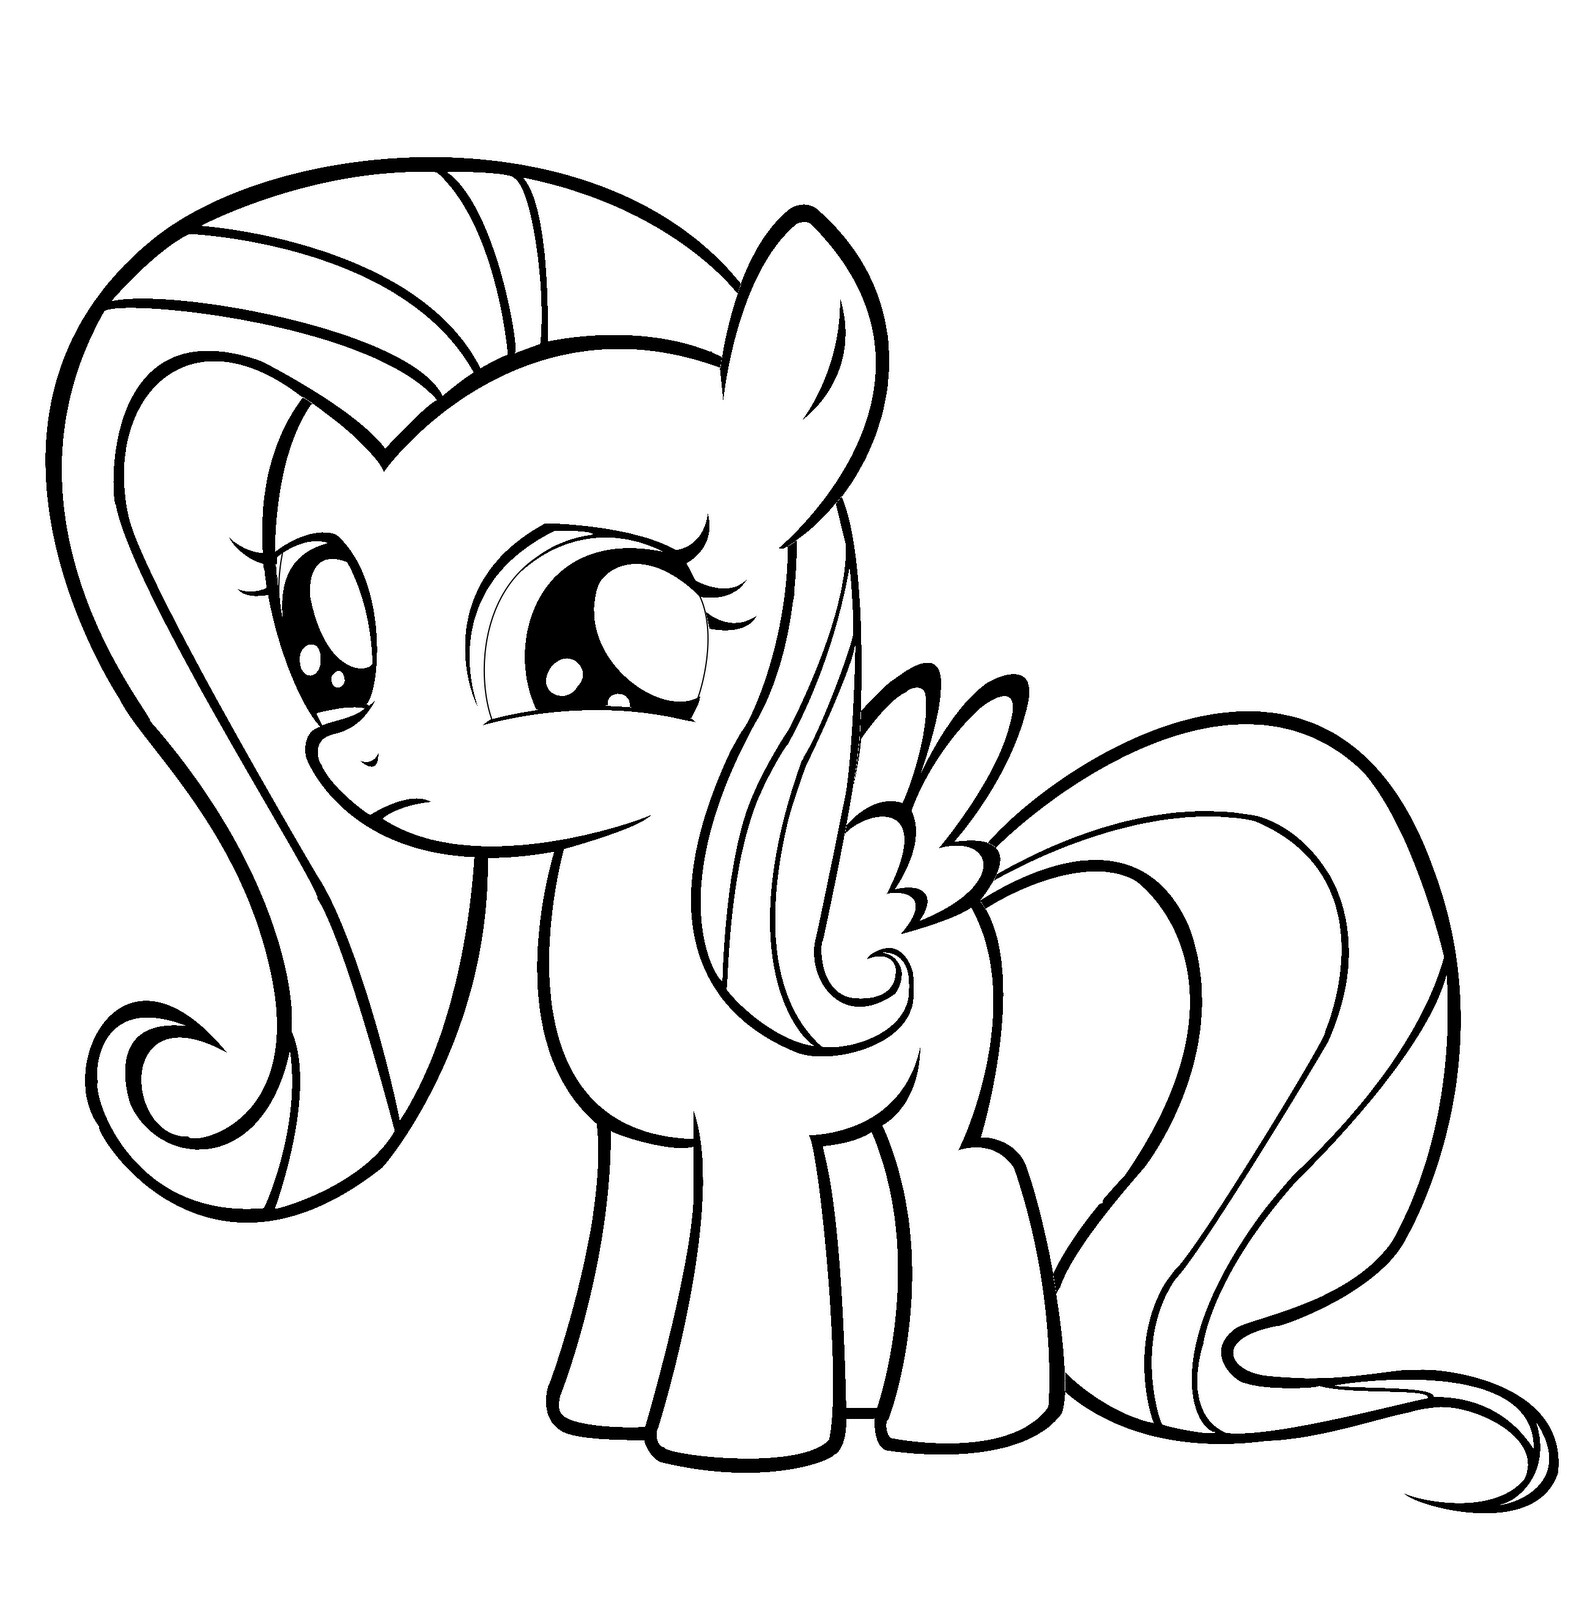 Best ideas about My Little Pony Coloring Pages For Kids . Save or Pin Fluttershy Coloring Pages Best Coloring Pages For Kids Now.